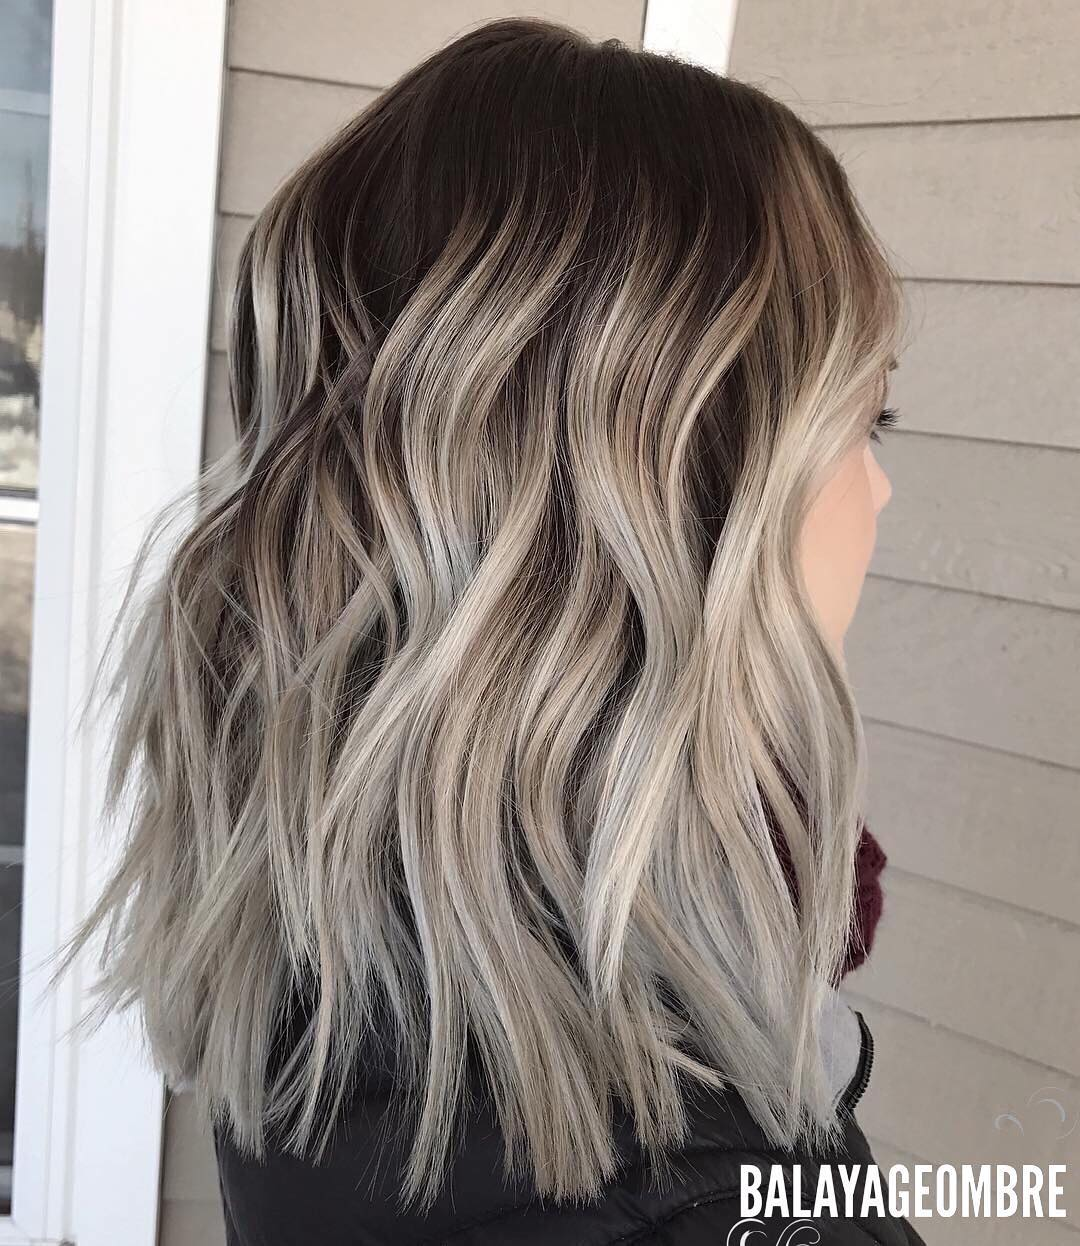 10 Trendy Brown Balayage Hairstyles for Medium,Length Hair 2020